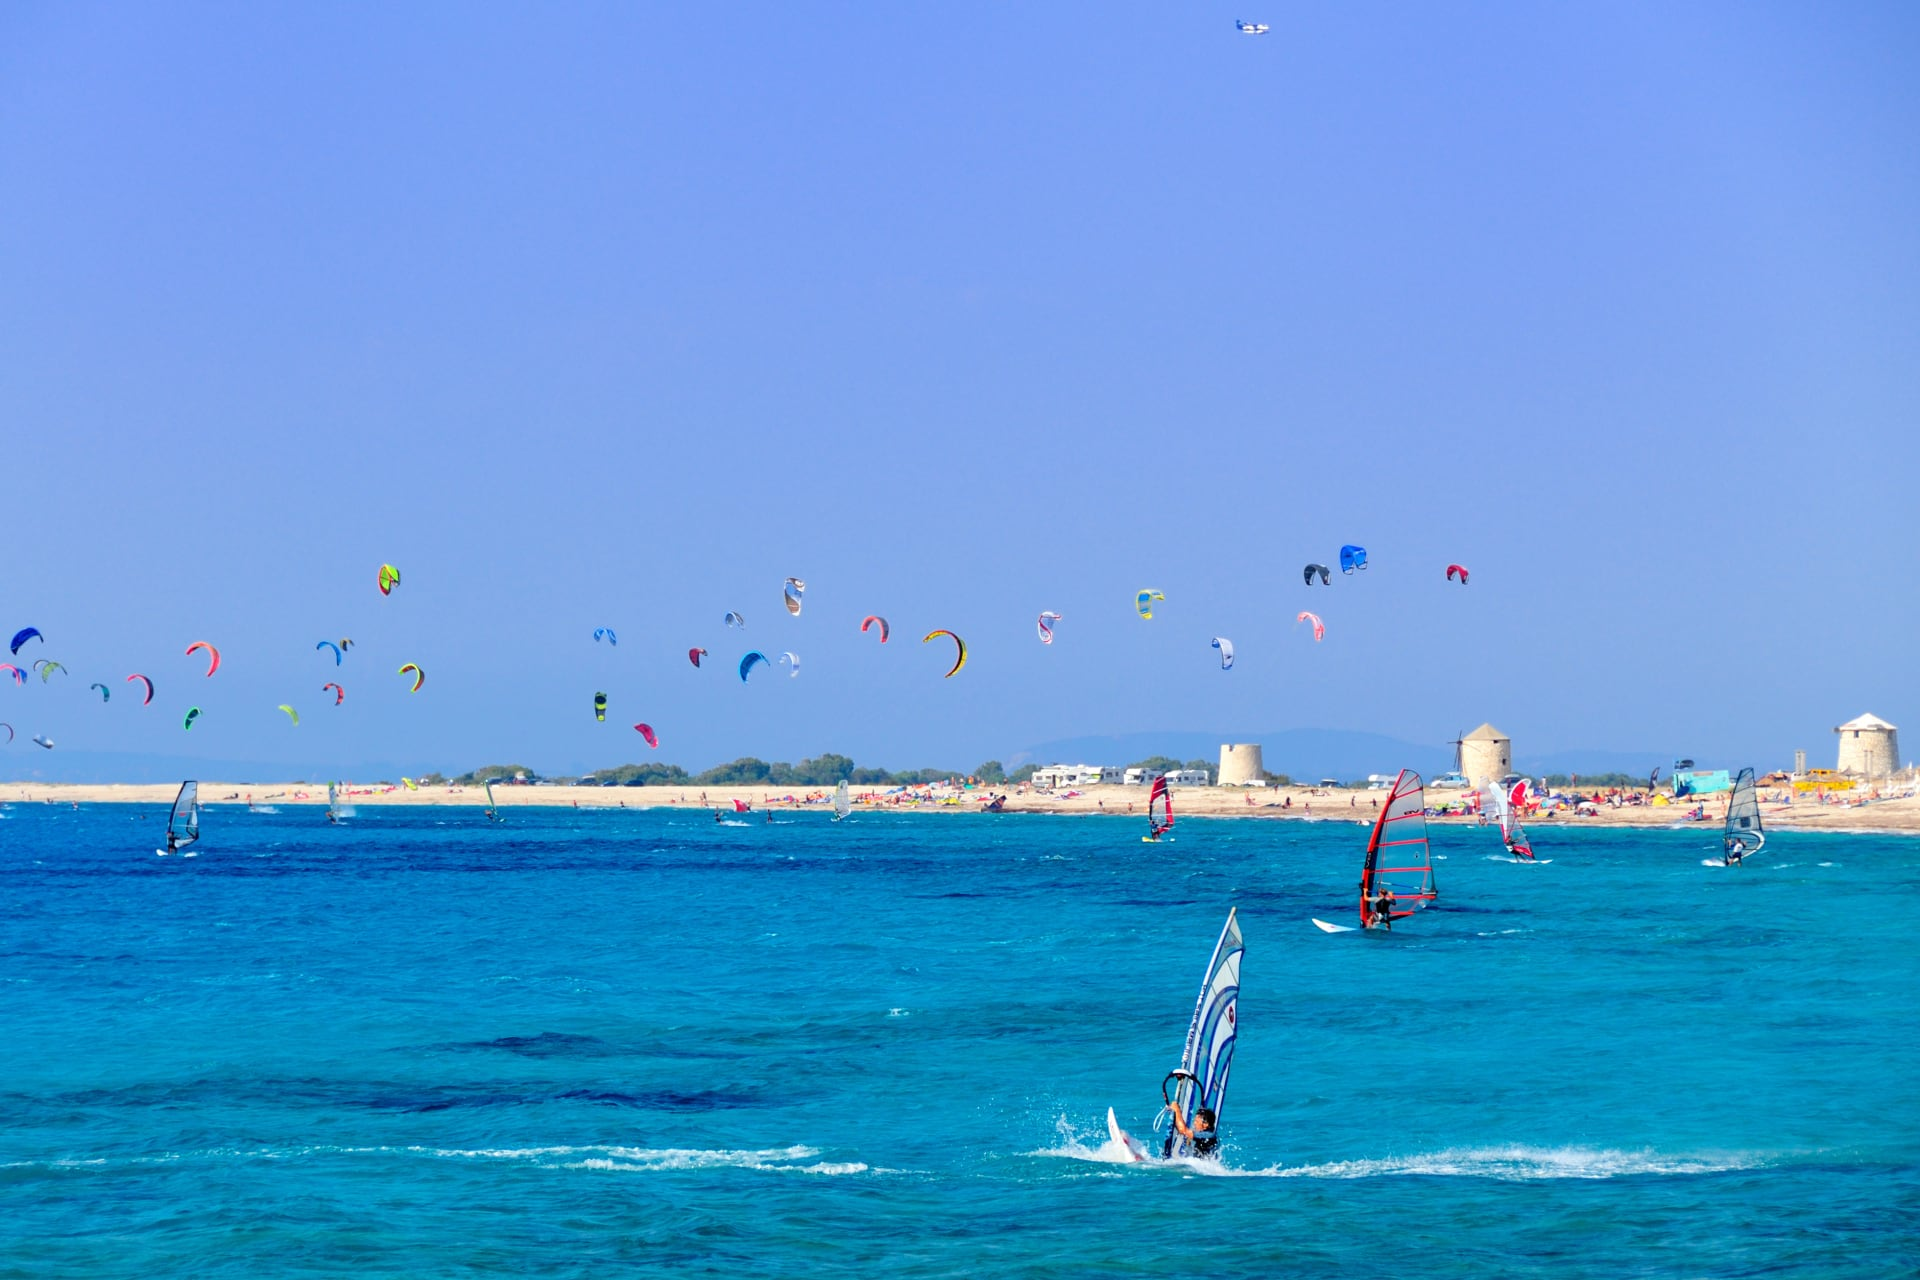 Kite-surfers and wind-surfers in action, Agios Ioannis Lefkada